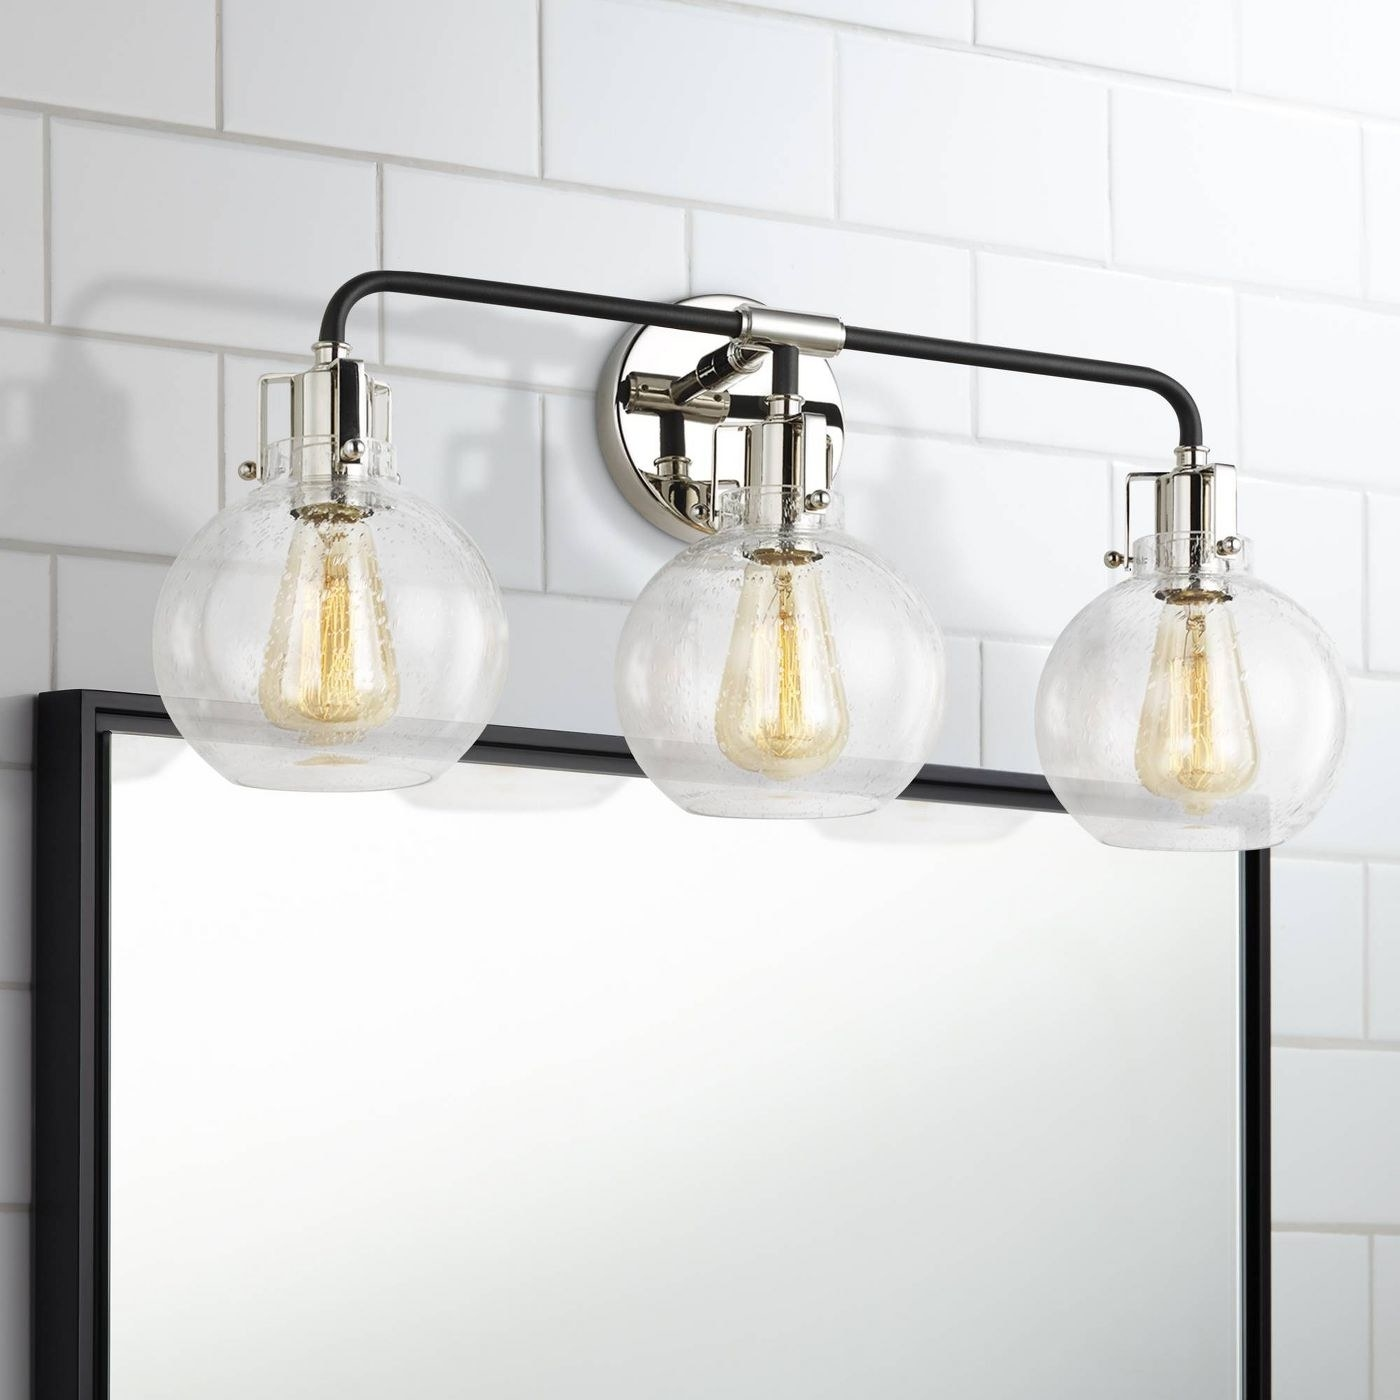 a mounted vanity light with three bulbs